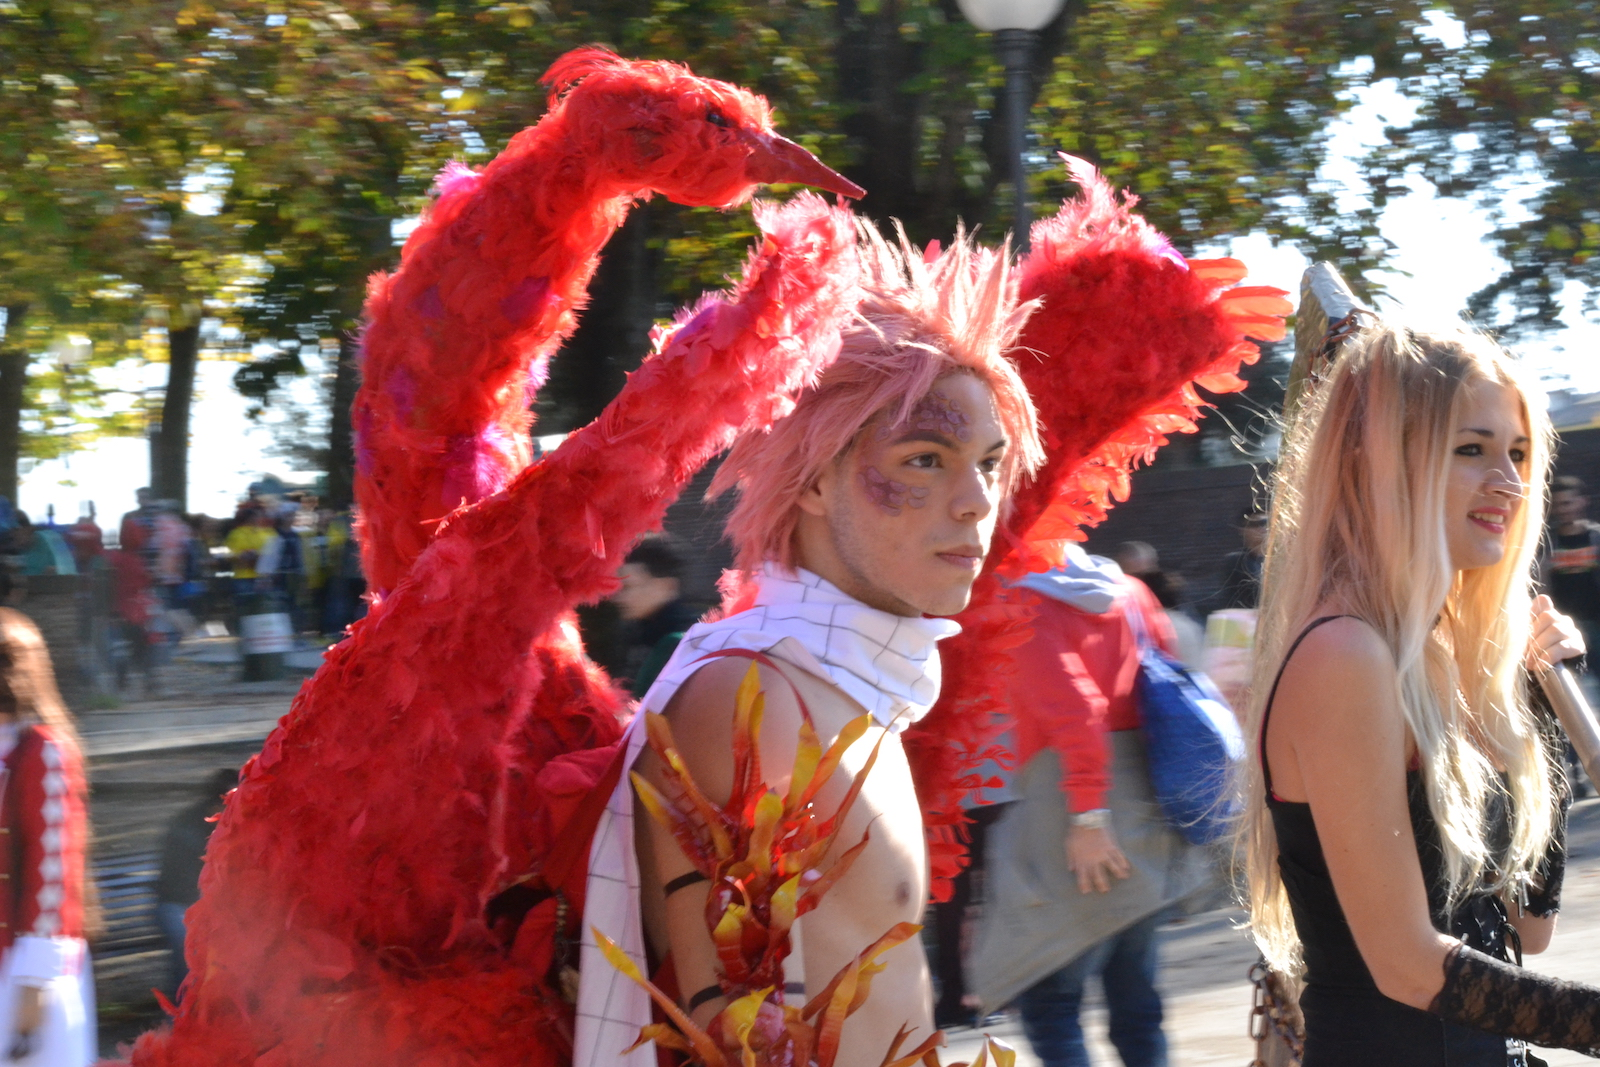 Lucca 2015: due ragazzi in cosplay al Lucca Comics and Games